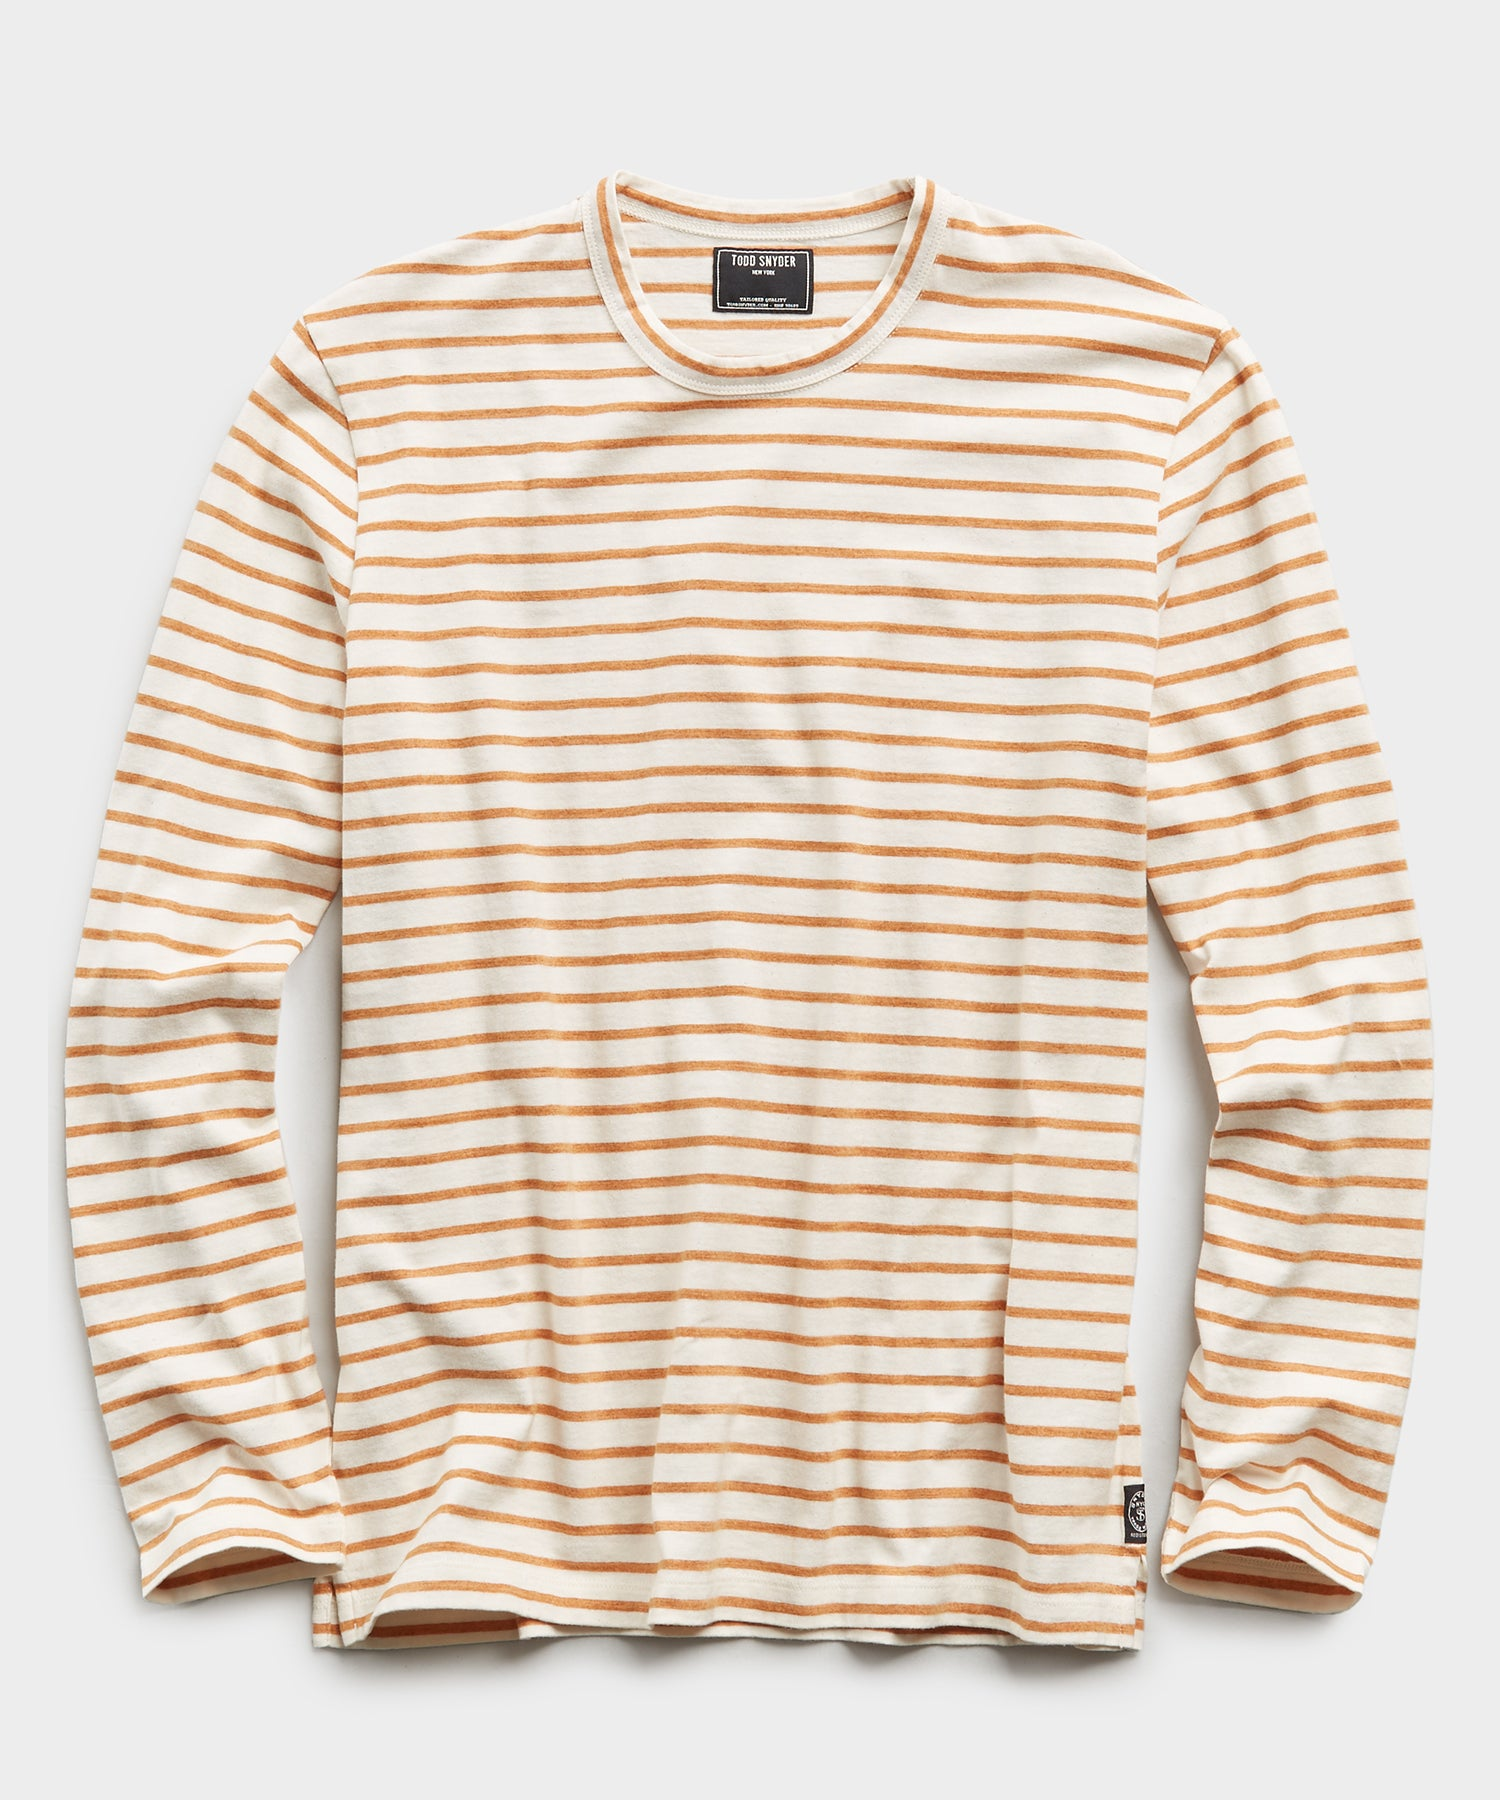 Long Sleeve Japanese Nautical Stripe Tee in Orange